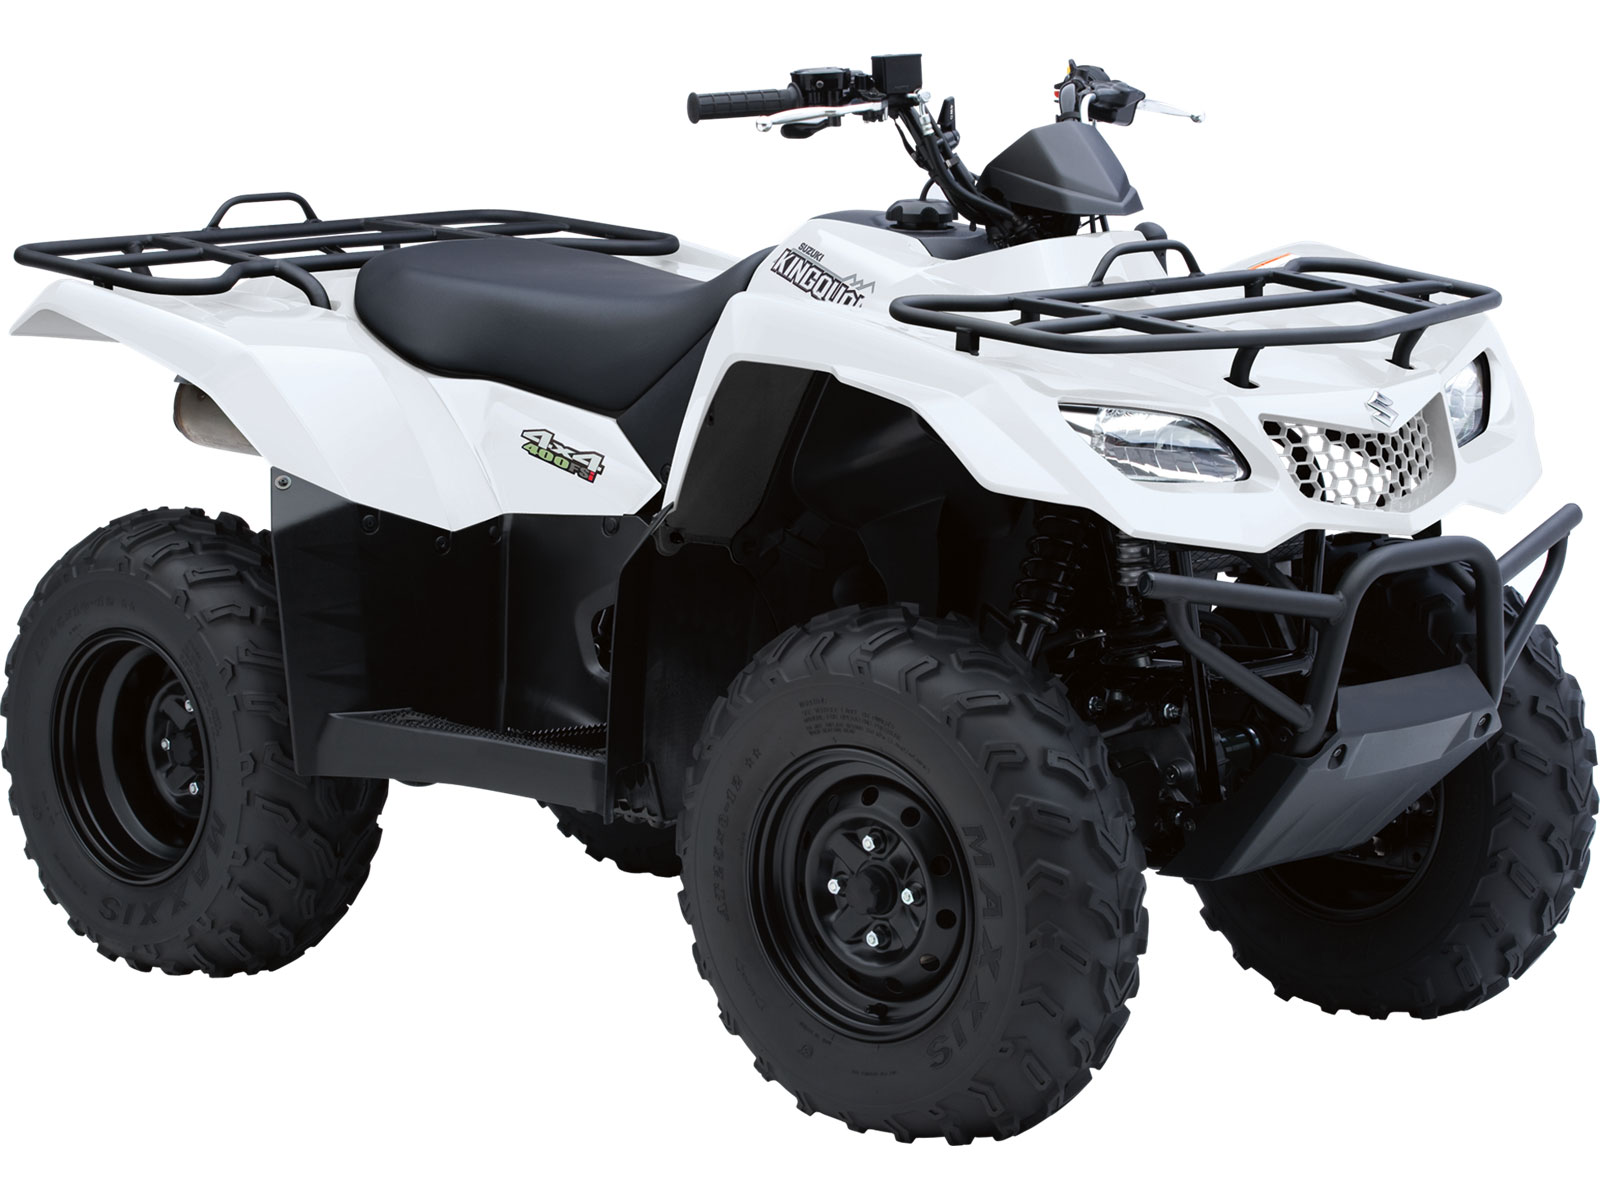 Suzuki Fsi King Quad